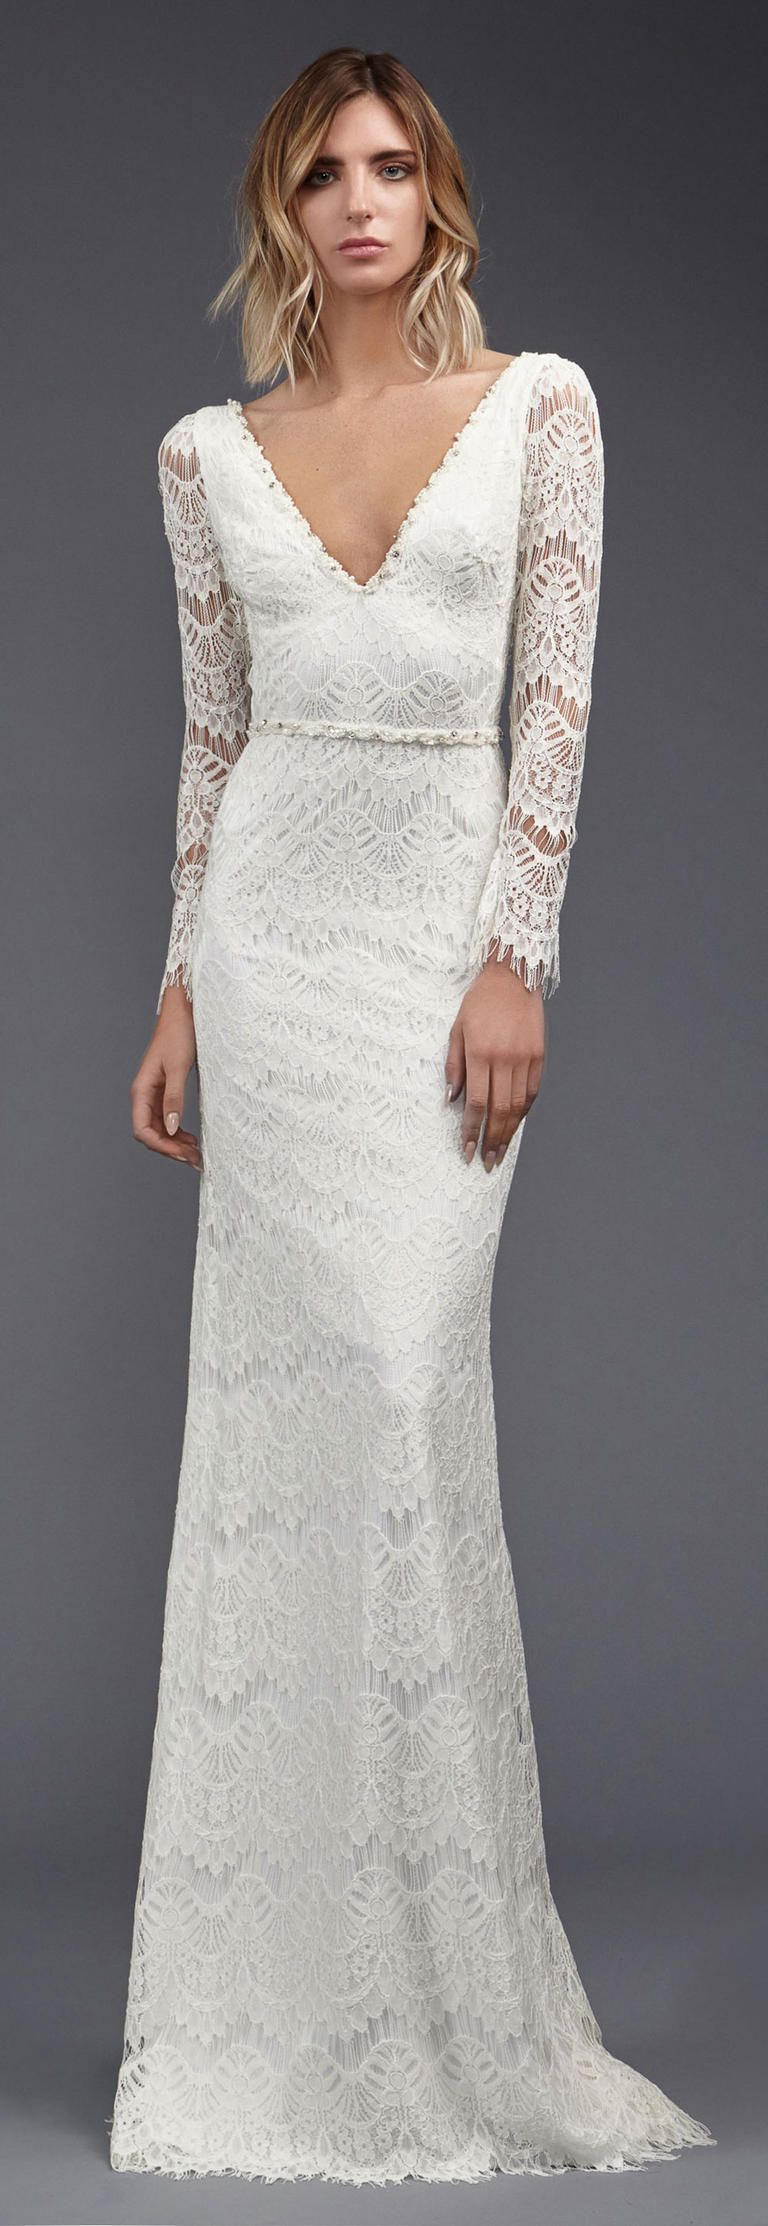 Victoria KyriaKides\' Weightless Lace Gowns for Spring 2017 ...